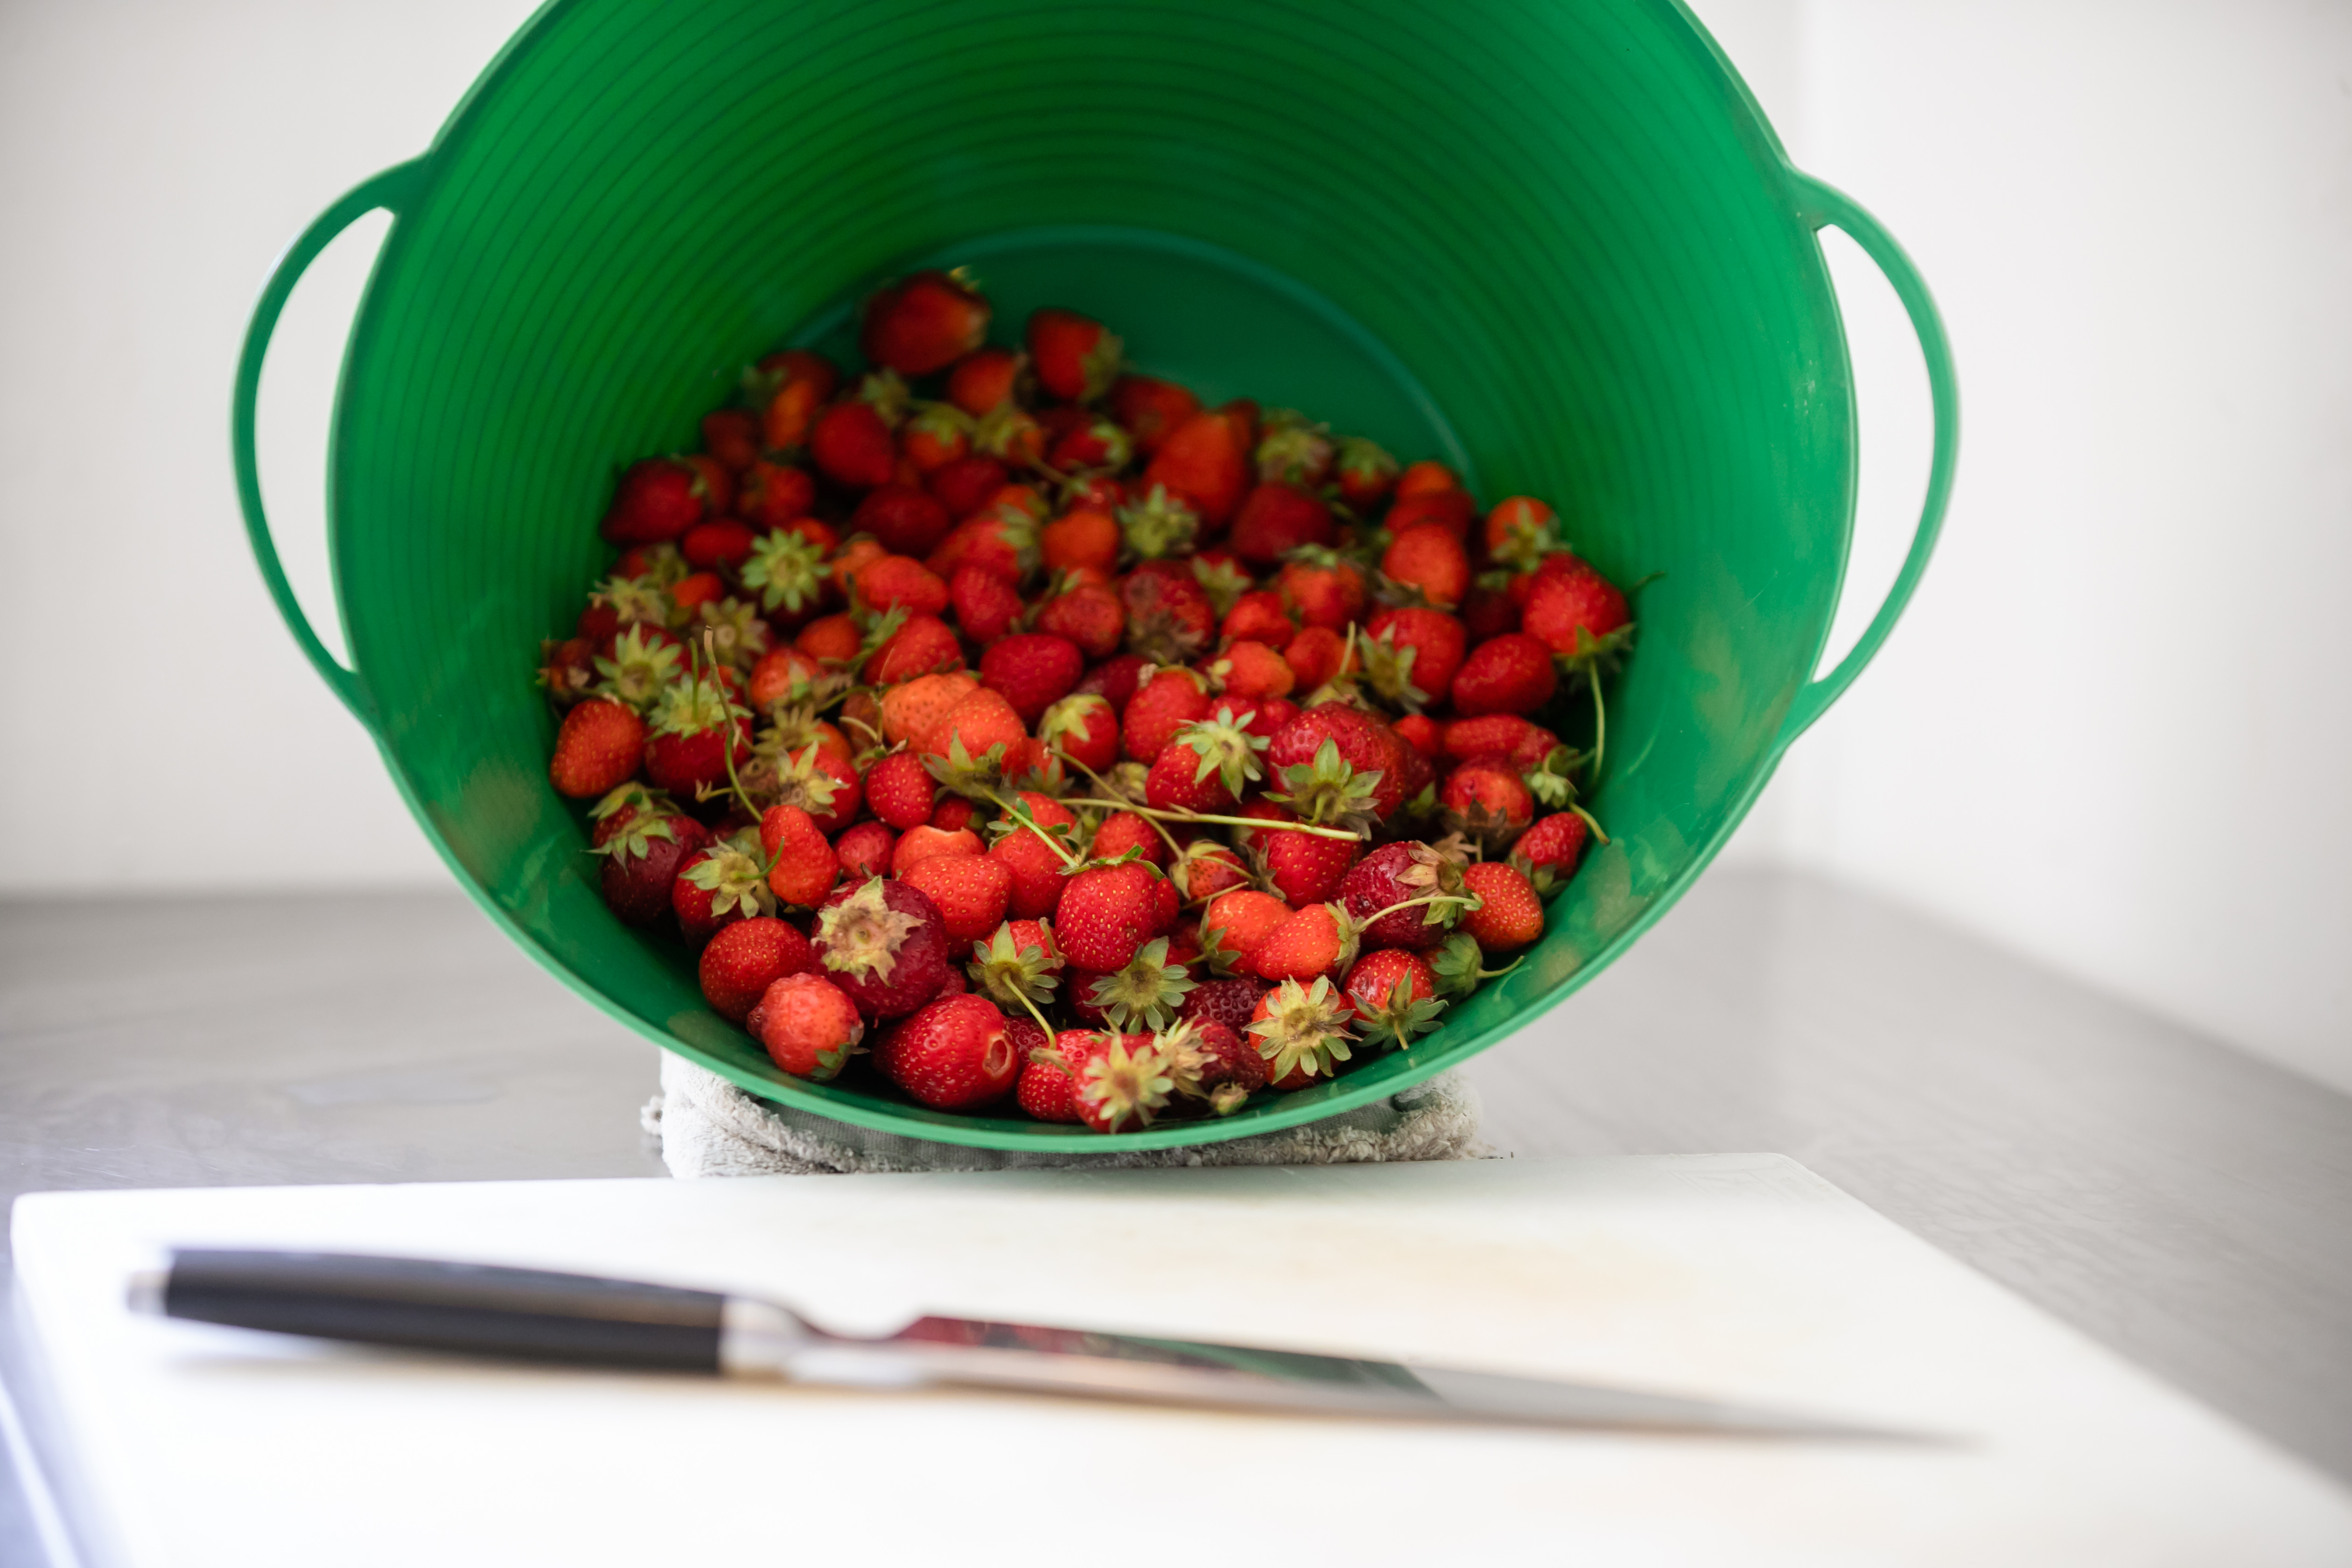 strawberries in a green plastic bucket next to a white cutting board and knife